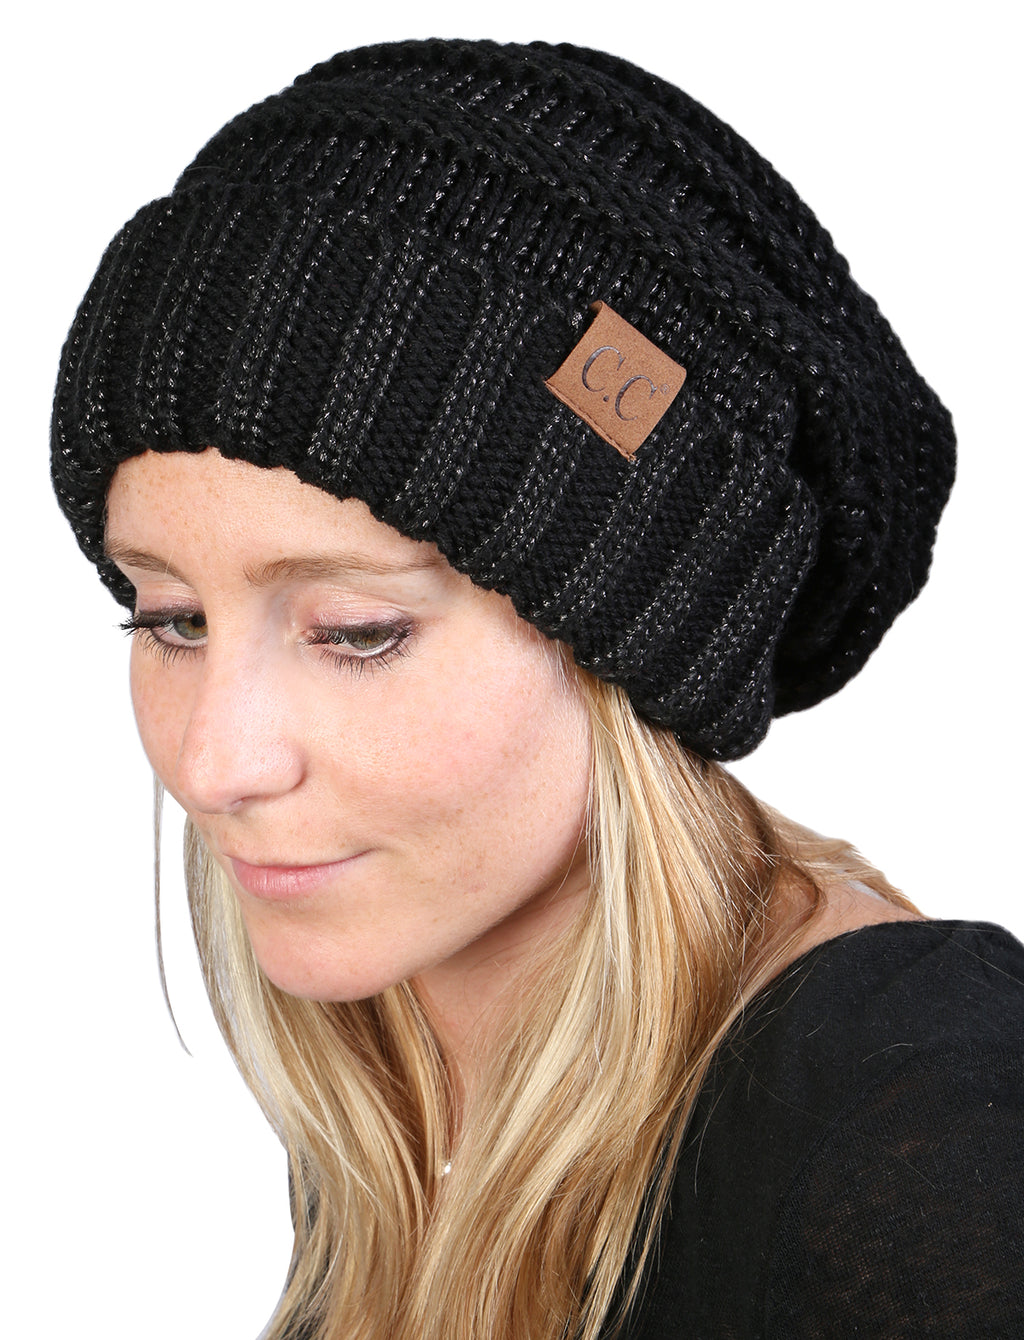 C.C Oversized Slouchy Beanie - Metallic Black